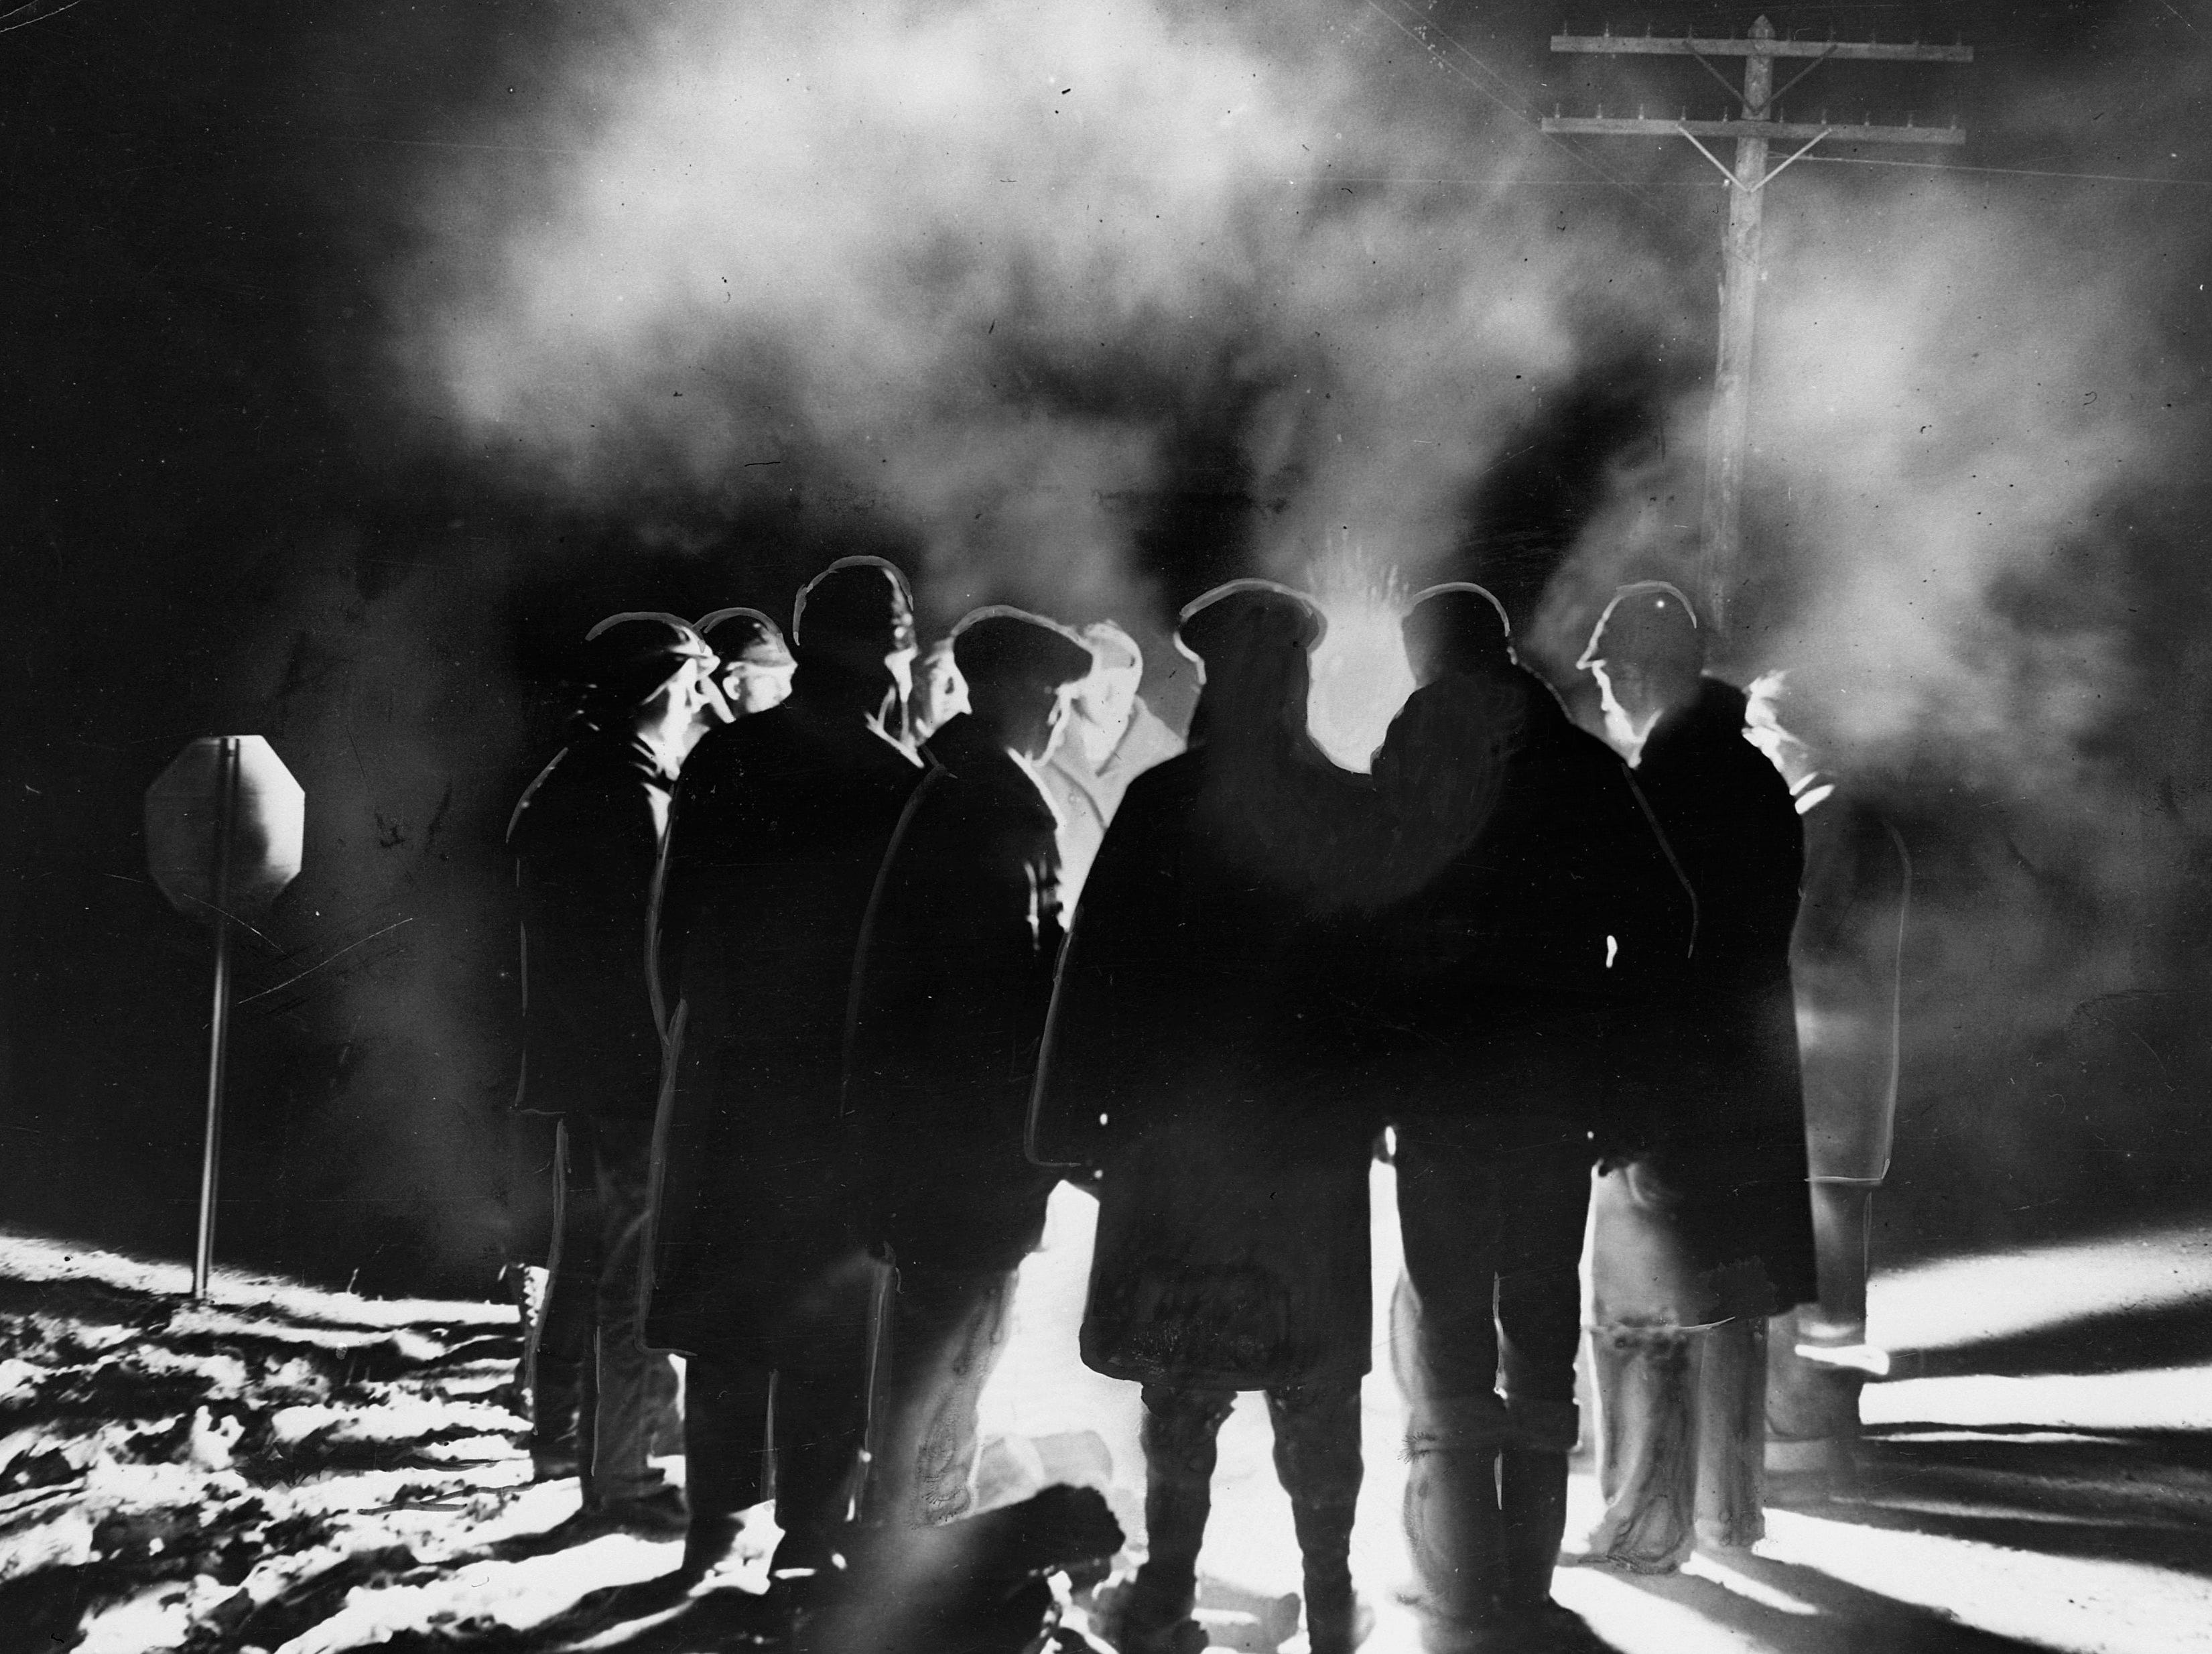 1933: A group of Wisconsin dairy farmers upset with the falling price of milk and their declining percentage of  revenue during the Great Depression spent the night picketing. The farmers are shown on Highway 26 north of New London as they huddled around a fire.